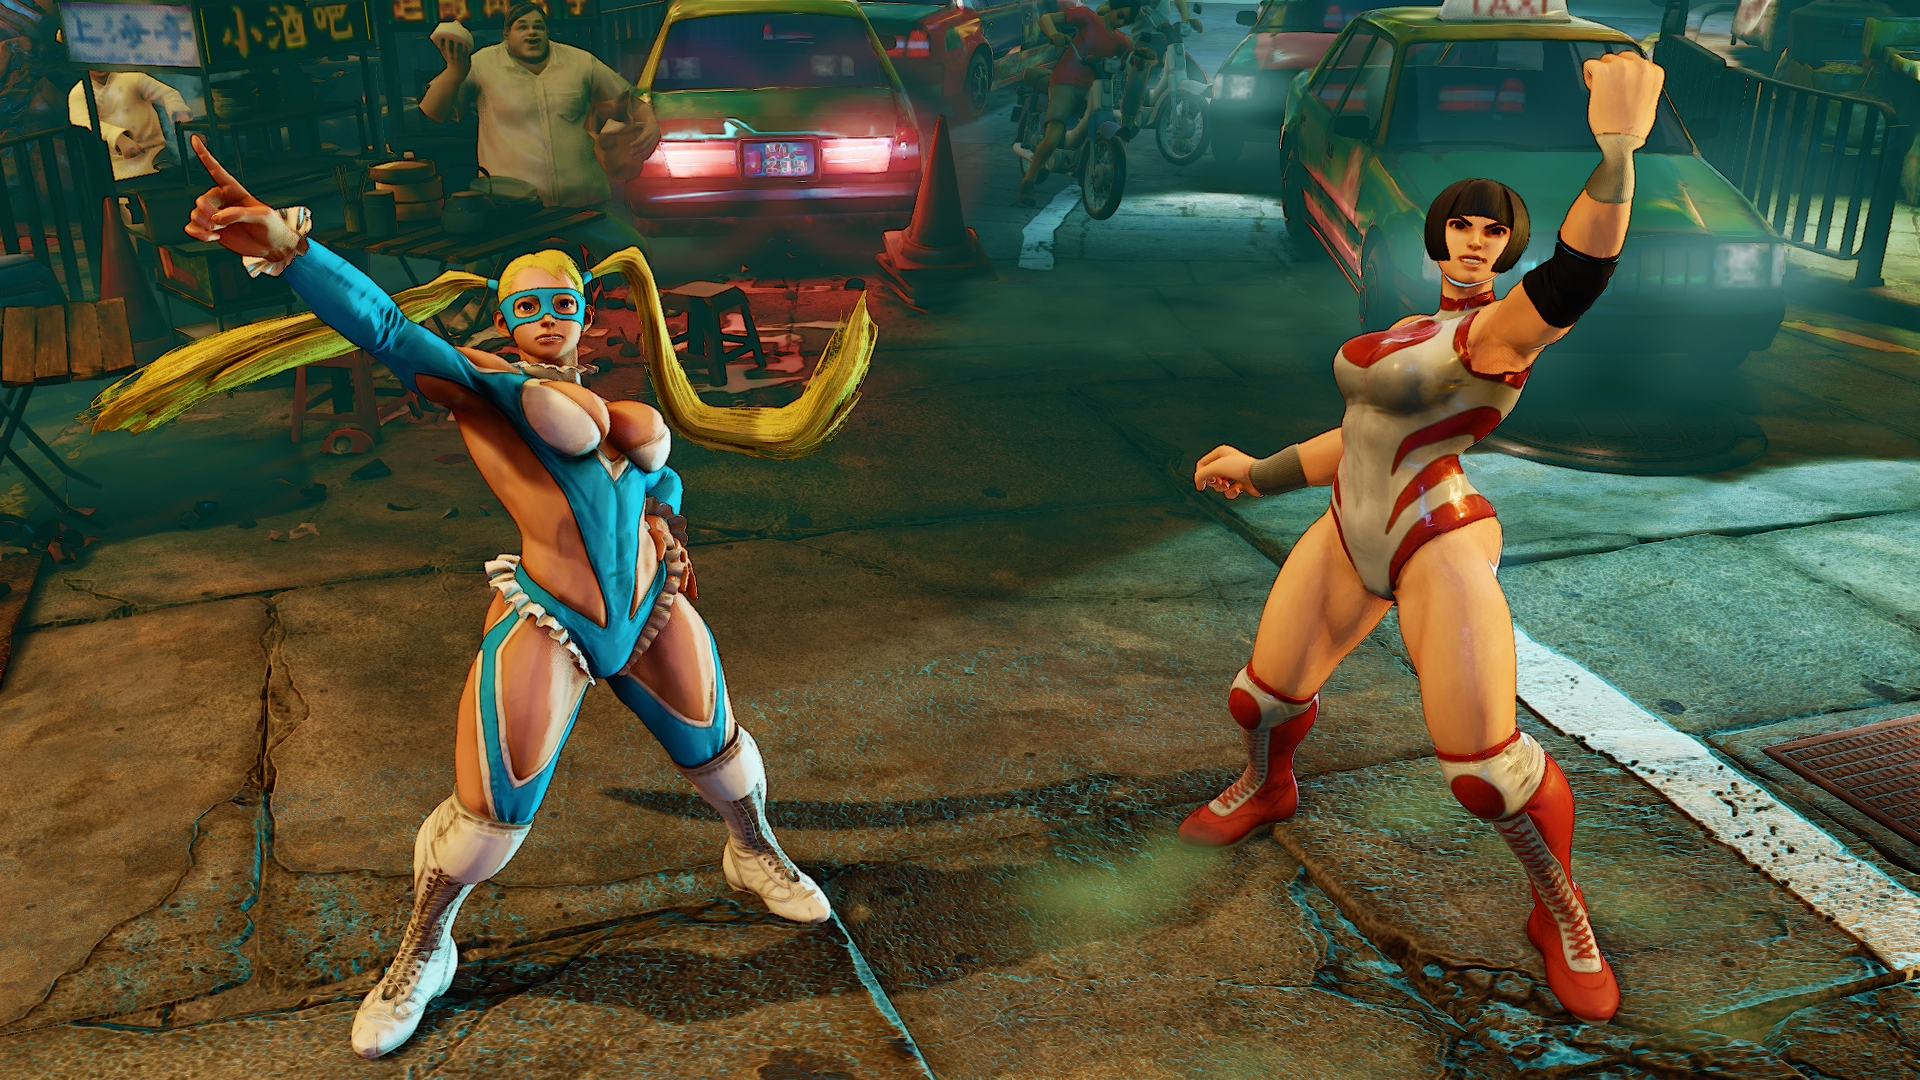 Mira el trailer del DLC de historia de Street Fighter V [VIDEO]